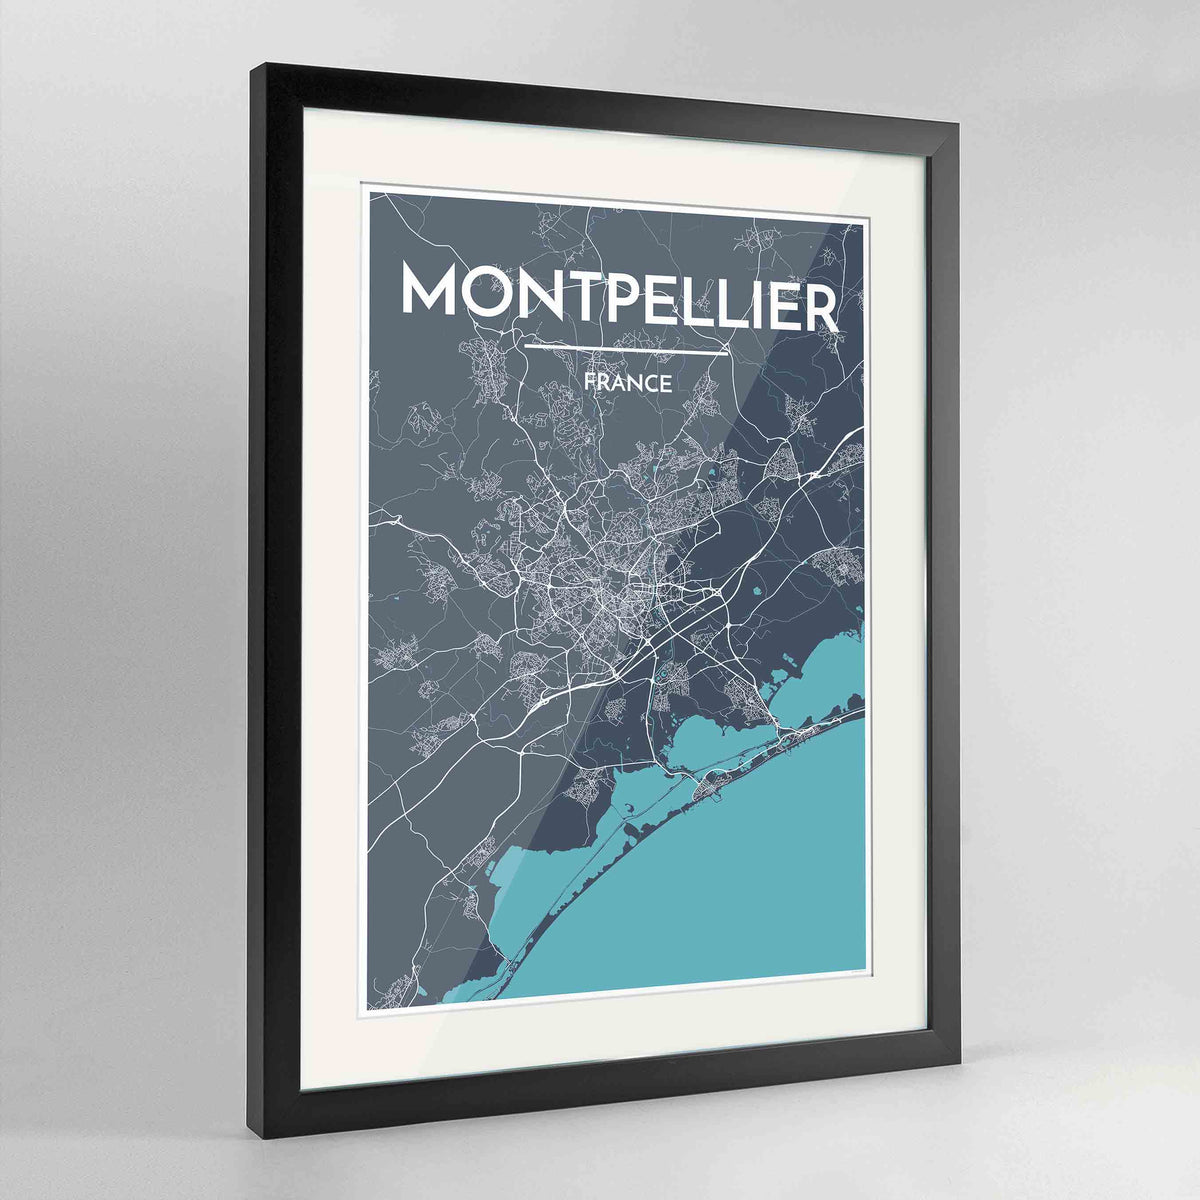 "Framed Montpellier Map Art Print 24x36"" Contemporary Black frame Point Two Design Group"